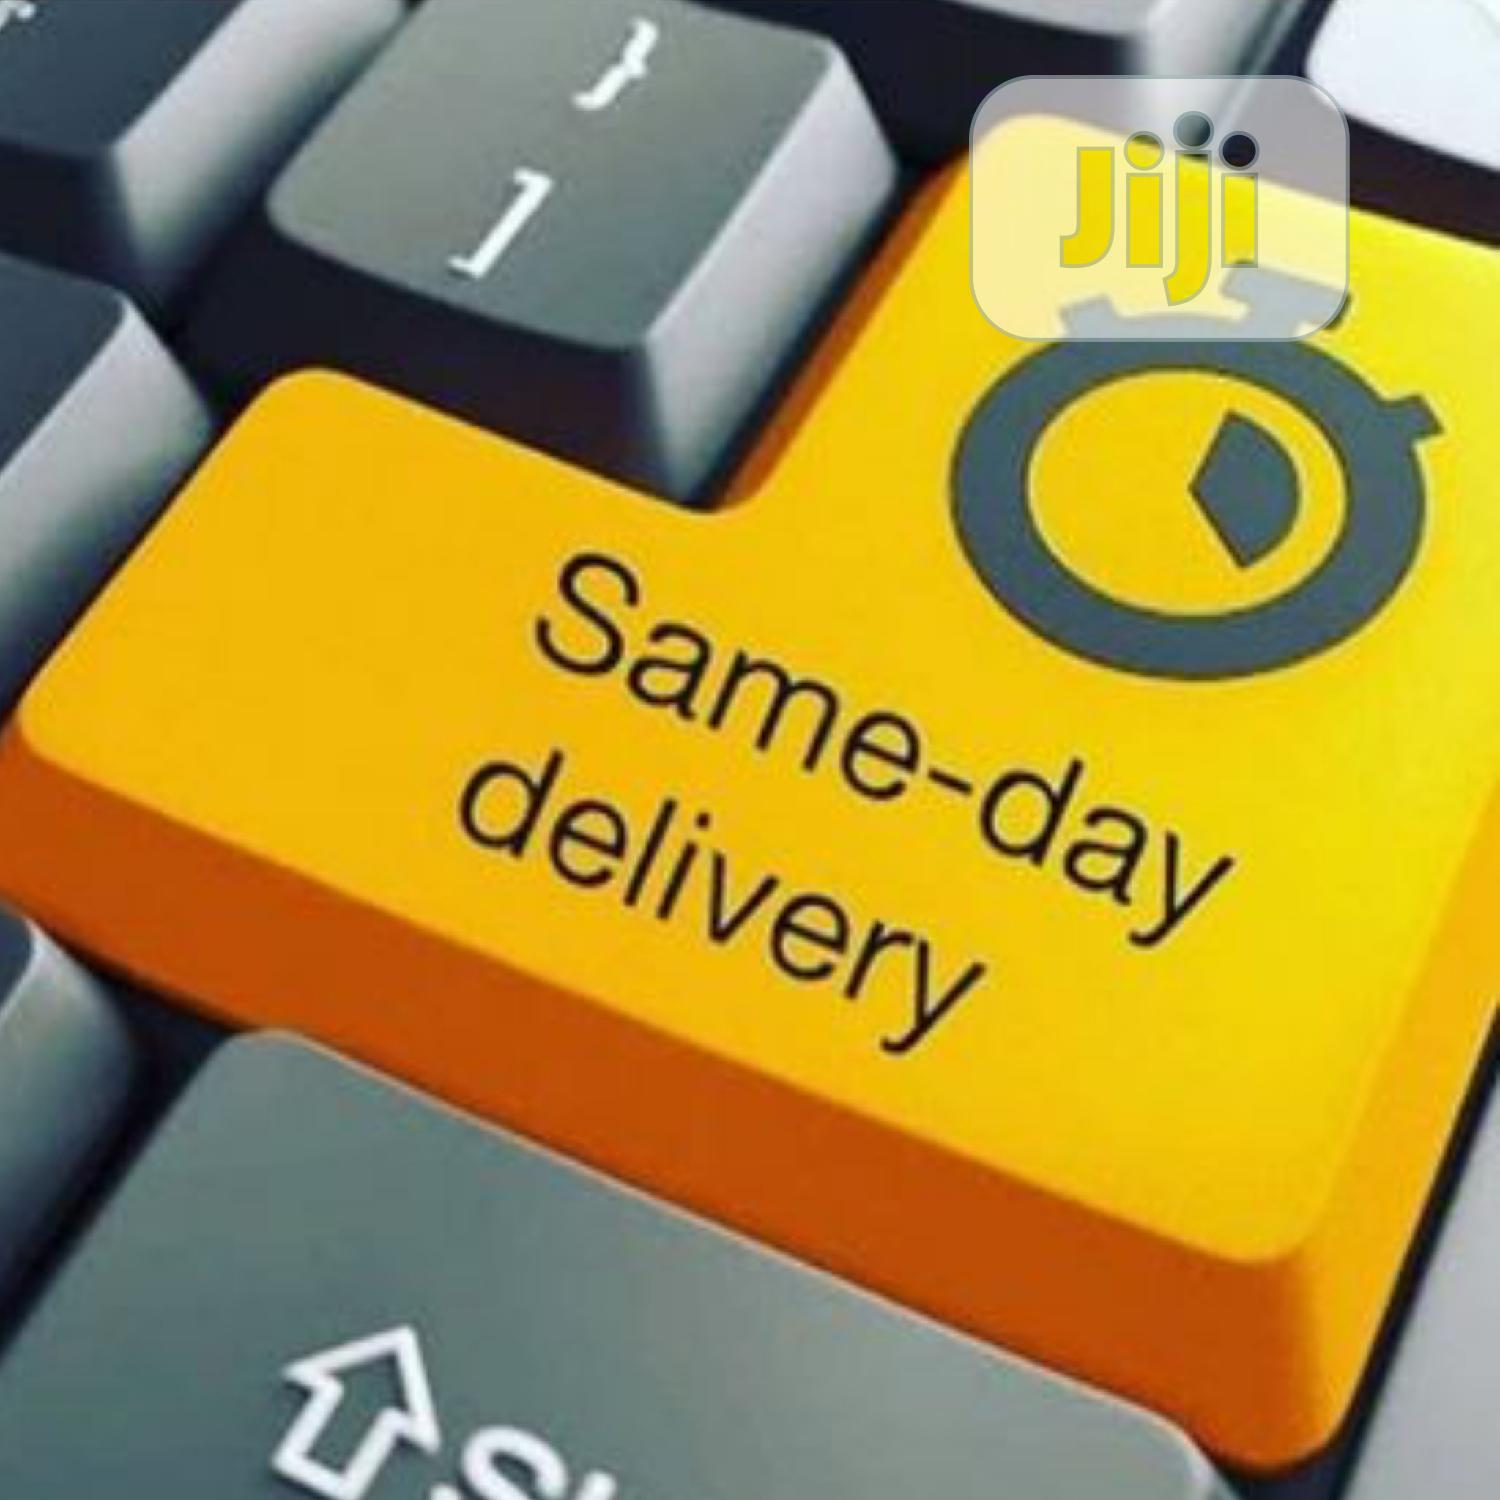 Same Day Delivery No Super Story